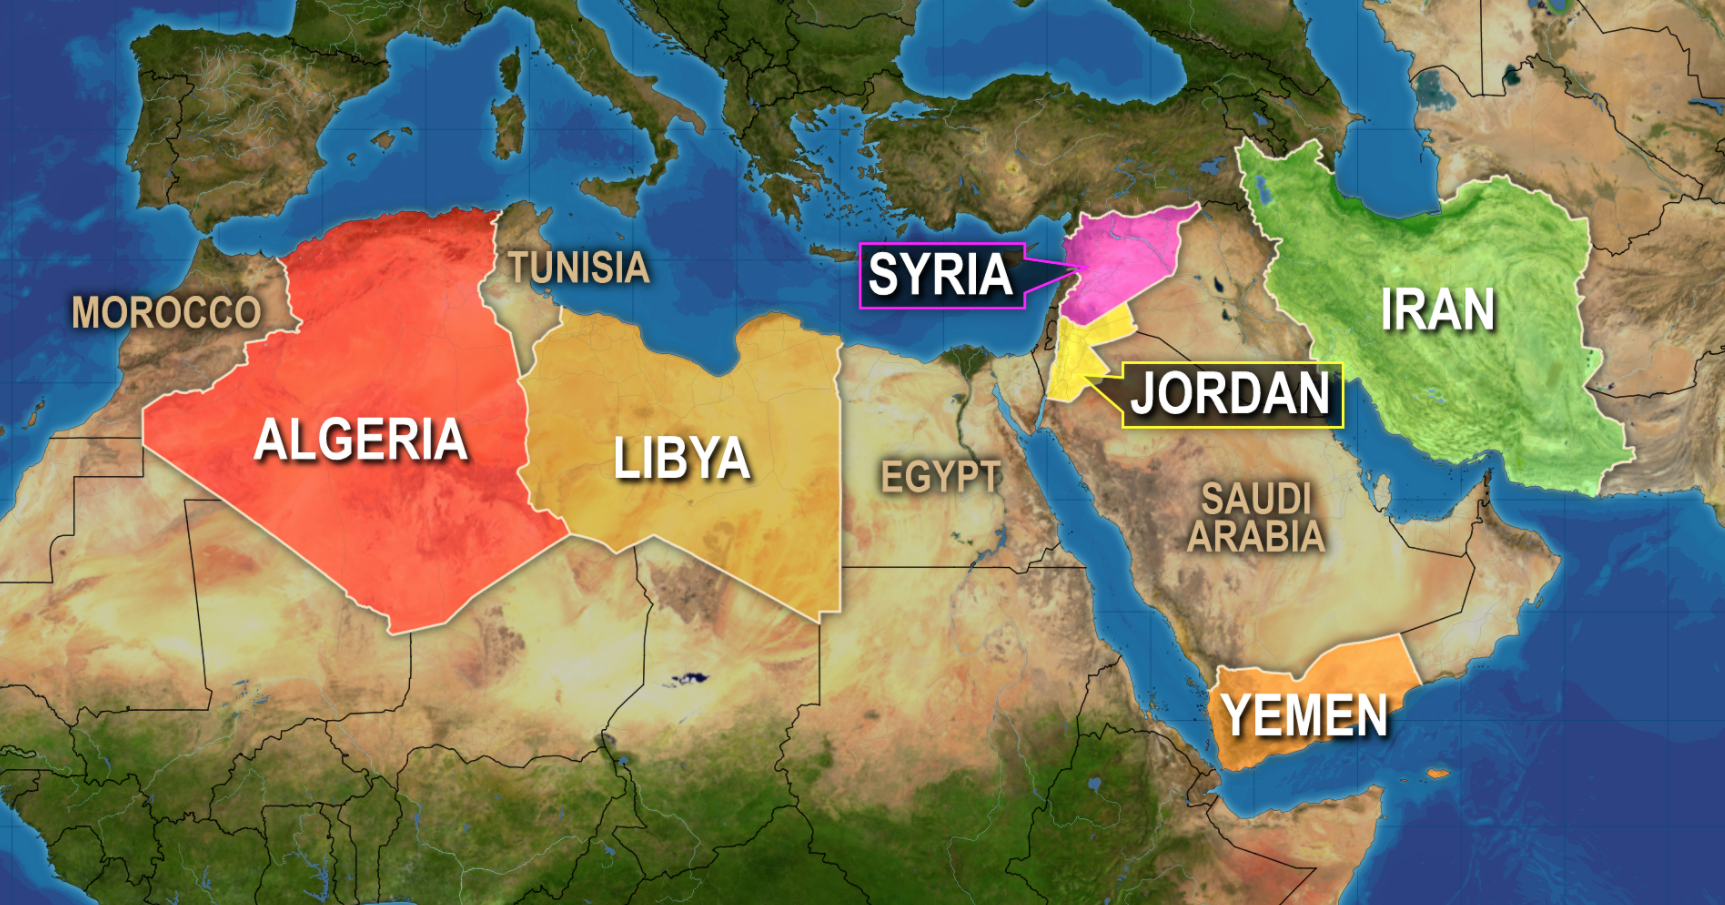 BREAKING: Three American Military Trainers Killed By Jordanians Outside Jordan Airbase Featured